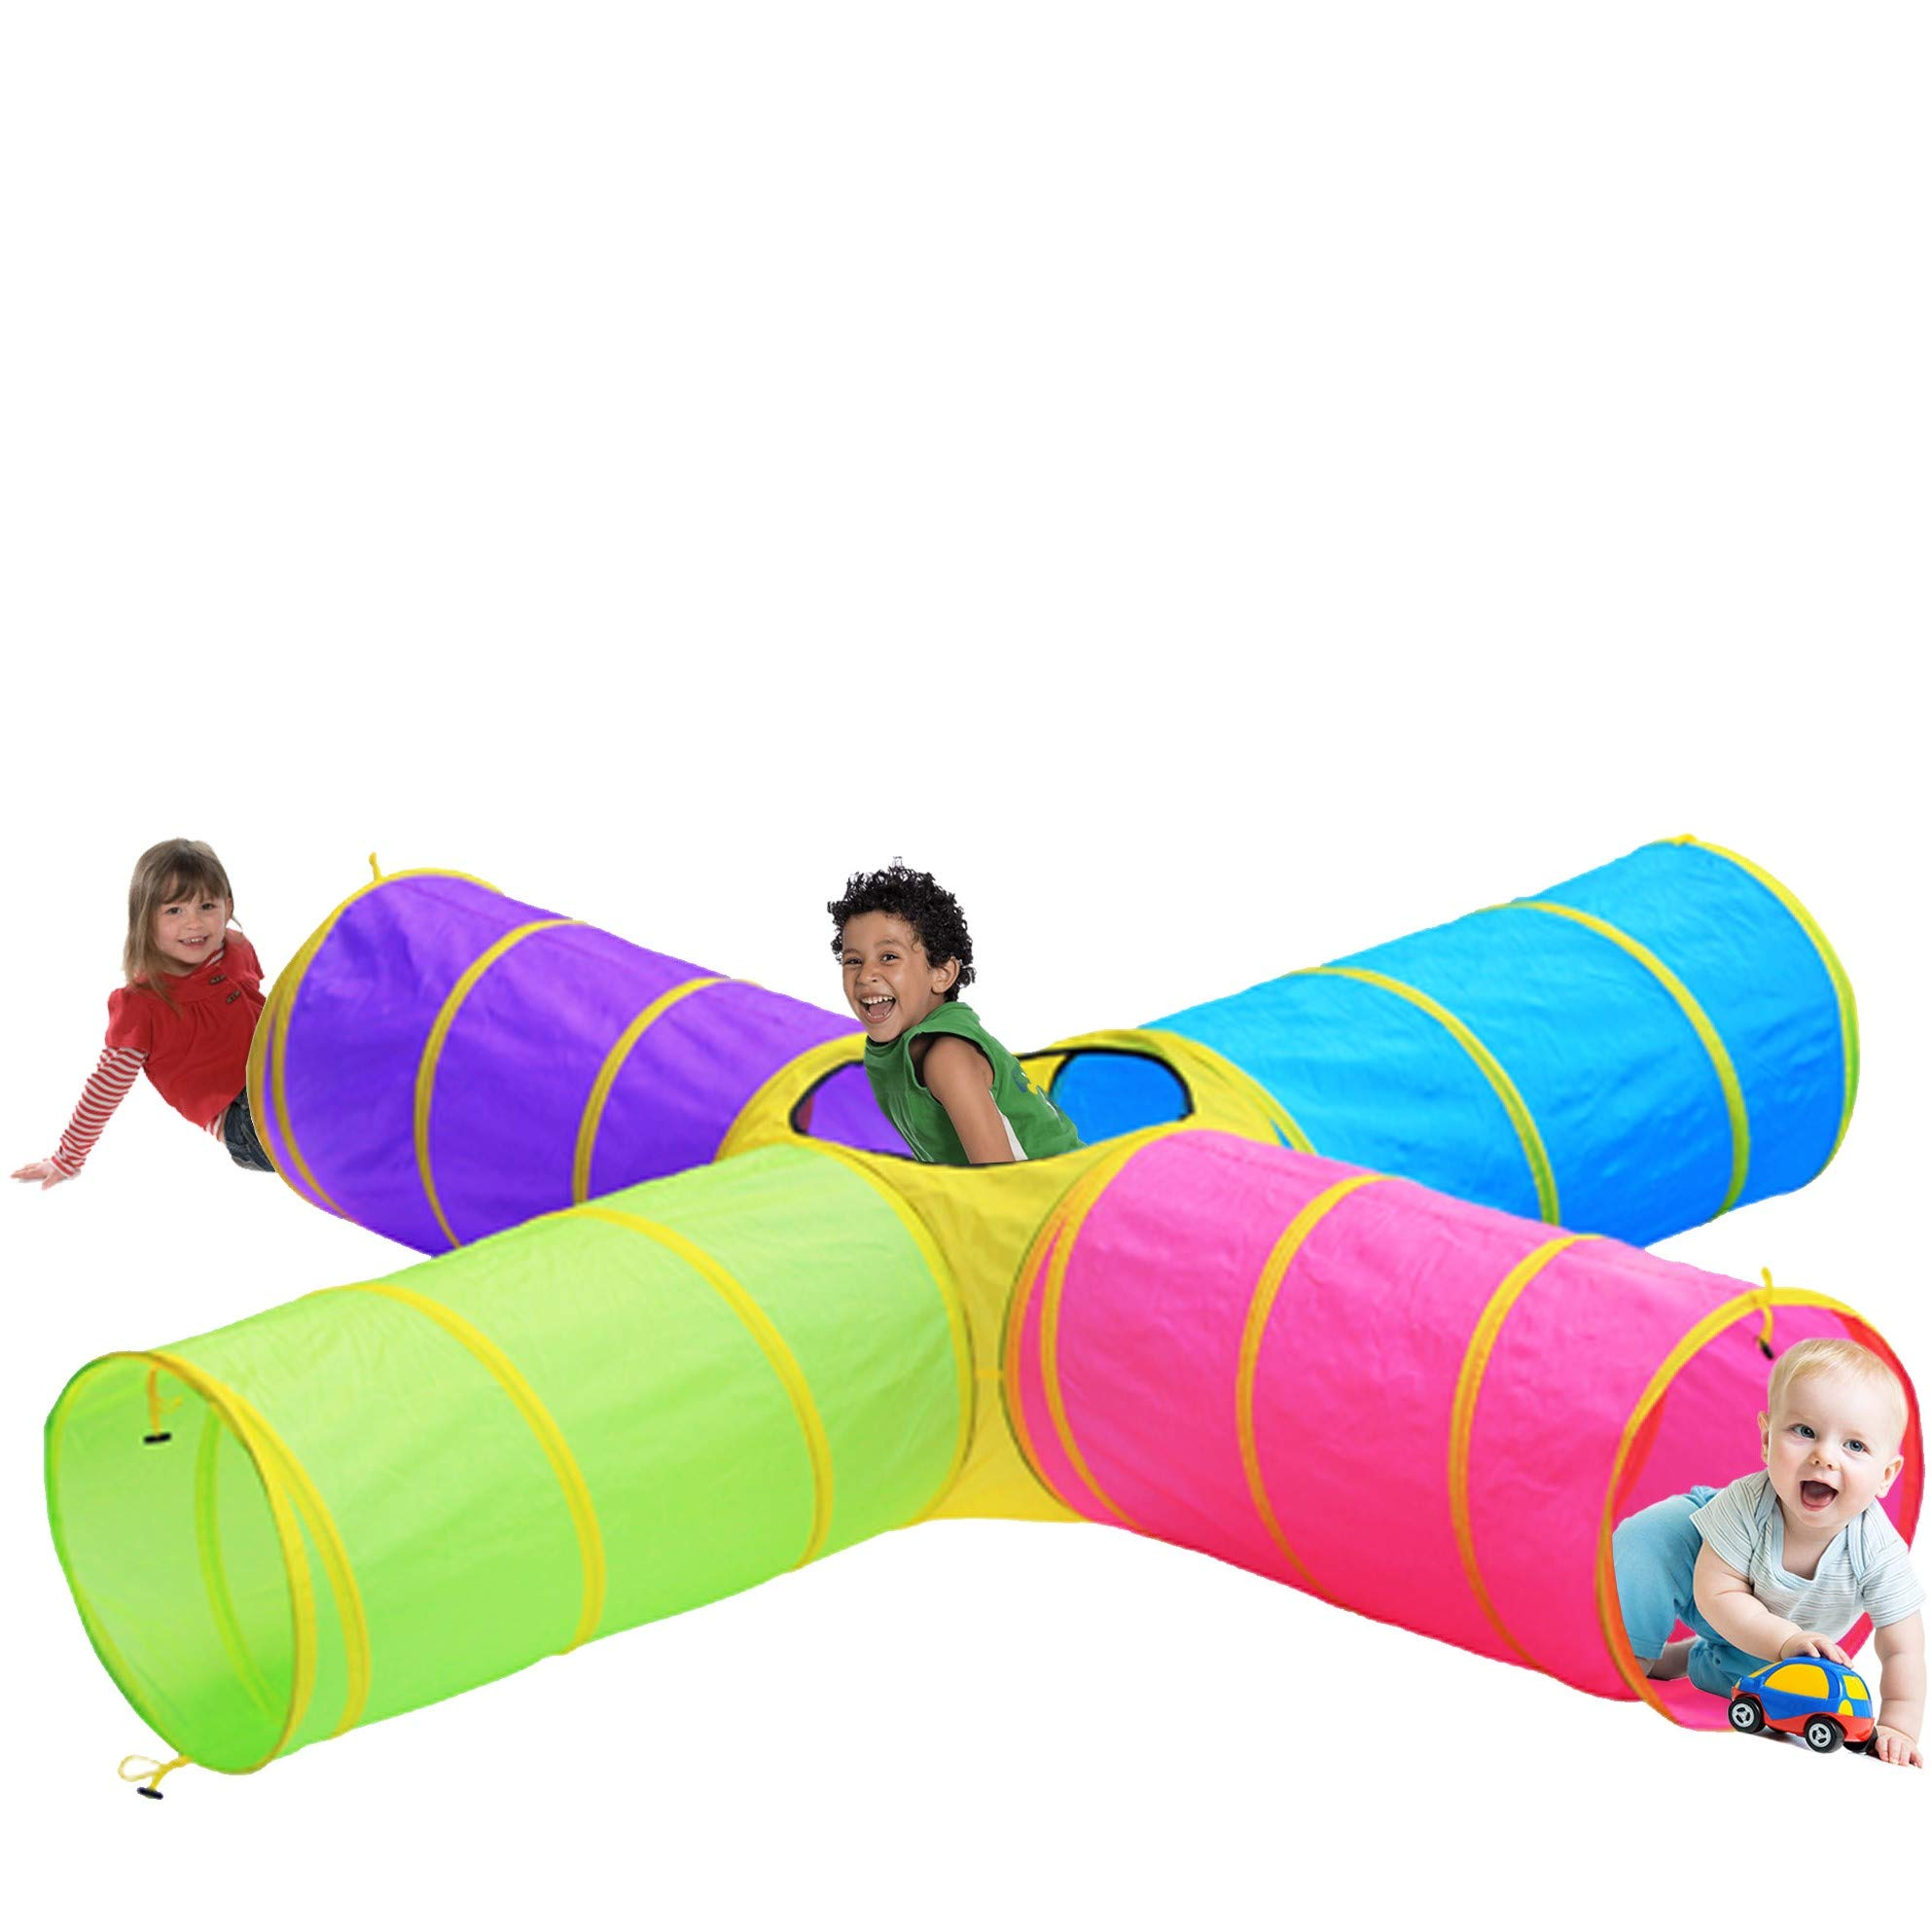 Hide N Side Kids Play Tunnels, Indoor Outdoor Crawl Through Tunnel for Kids Dog Toddler Babies Children , Pop up Tunnel Gift Toy by Hide N Side